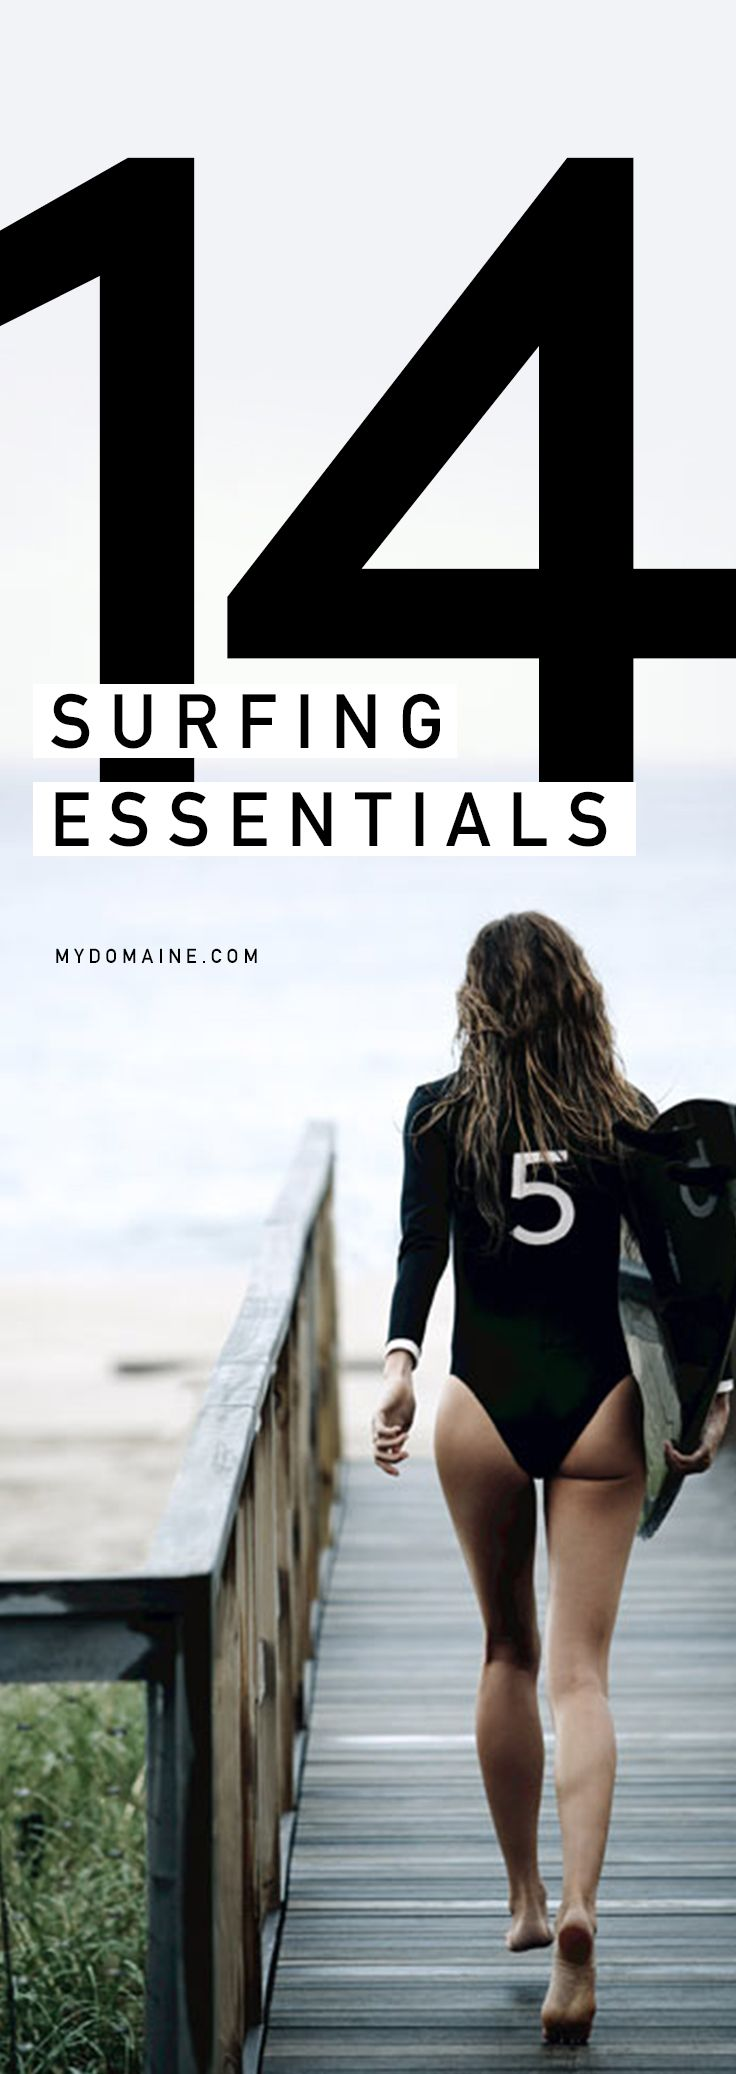 Surfing essentials